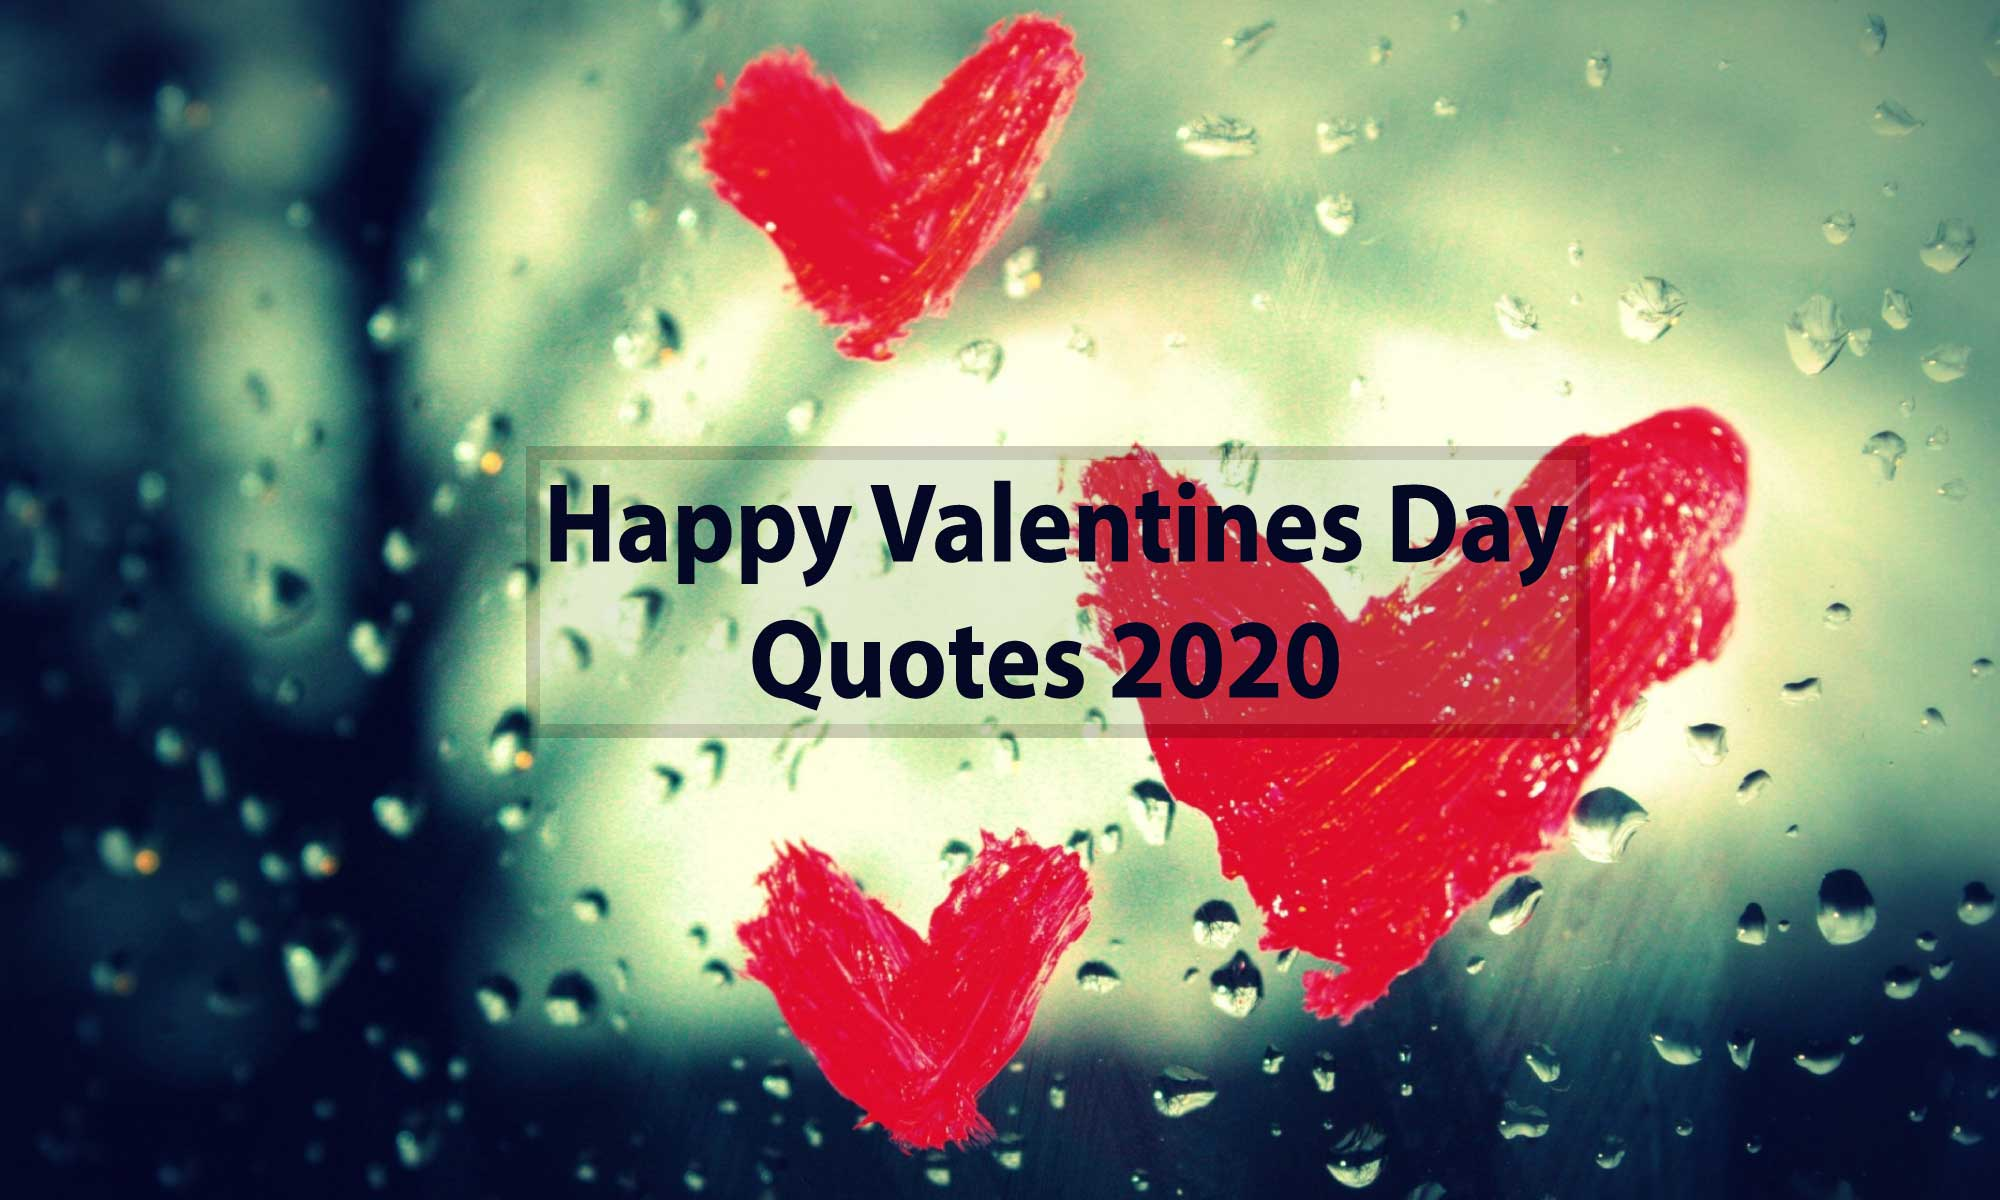 Happy-Valentines-Day-Quotes-2020